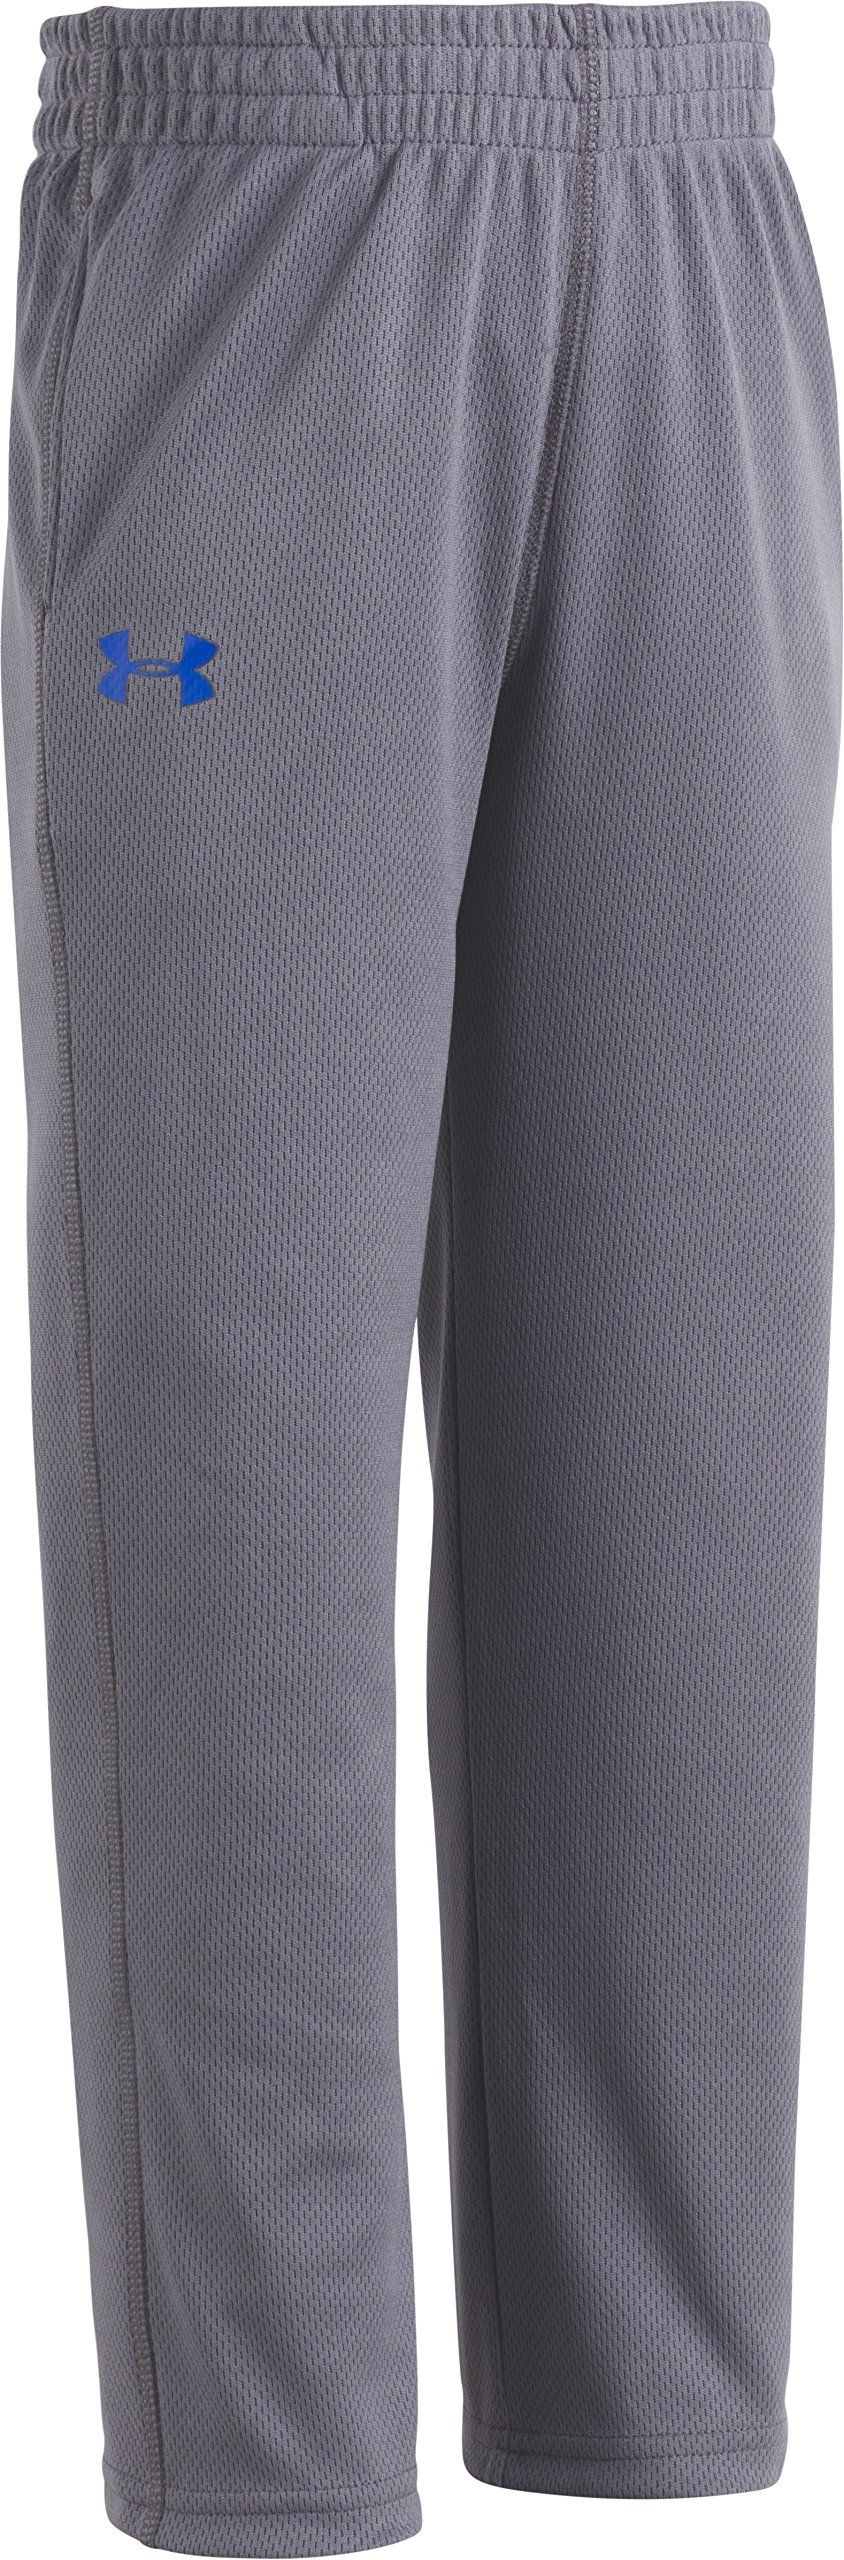 Under Armour Boys' Toddler Brute Pant, Graphite, 2T